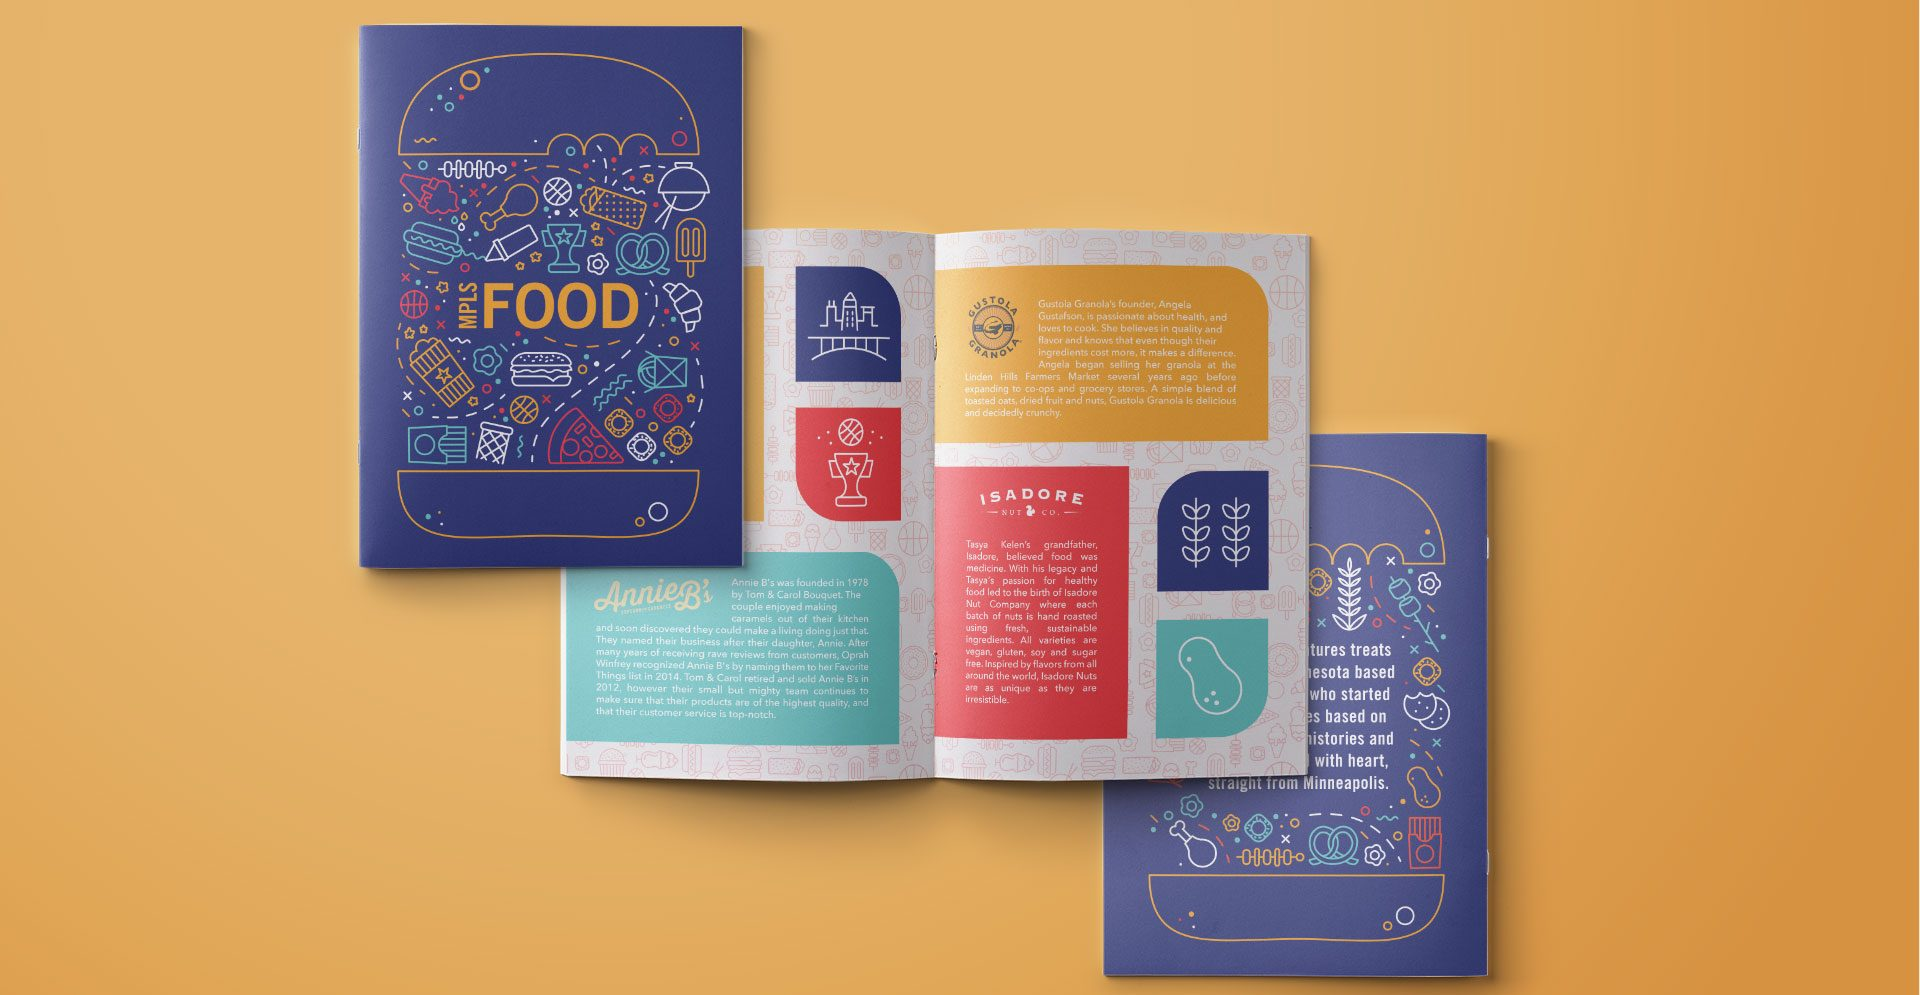 A mockup of a brochure about food